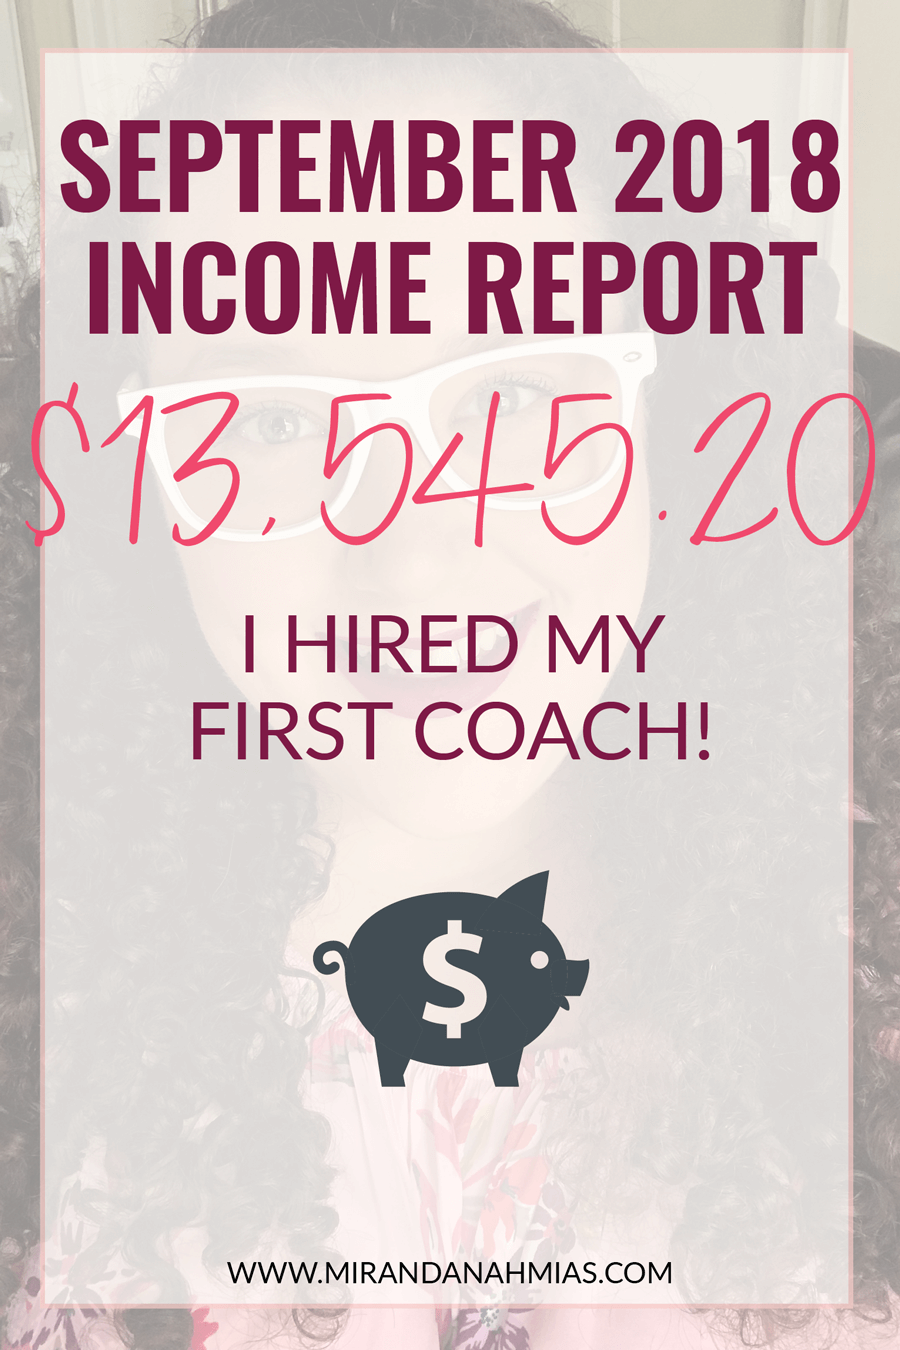 My September 2018 Income Report! | Miranda Nahmias & Co. Systematic Marketing